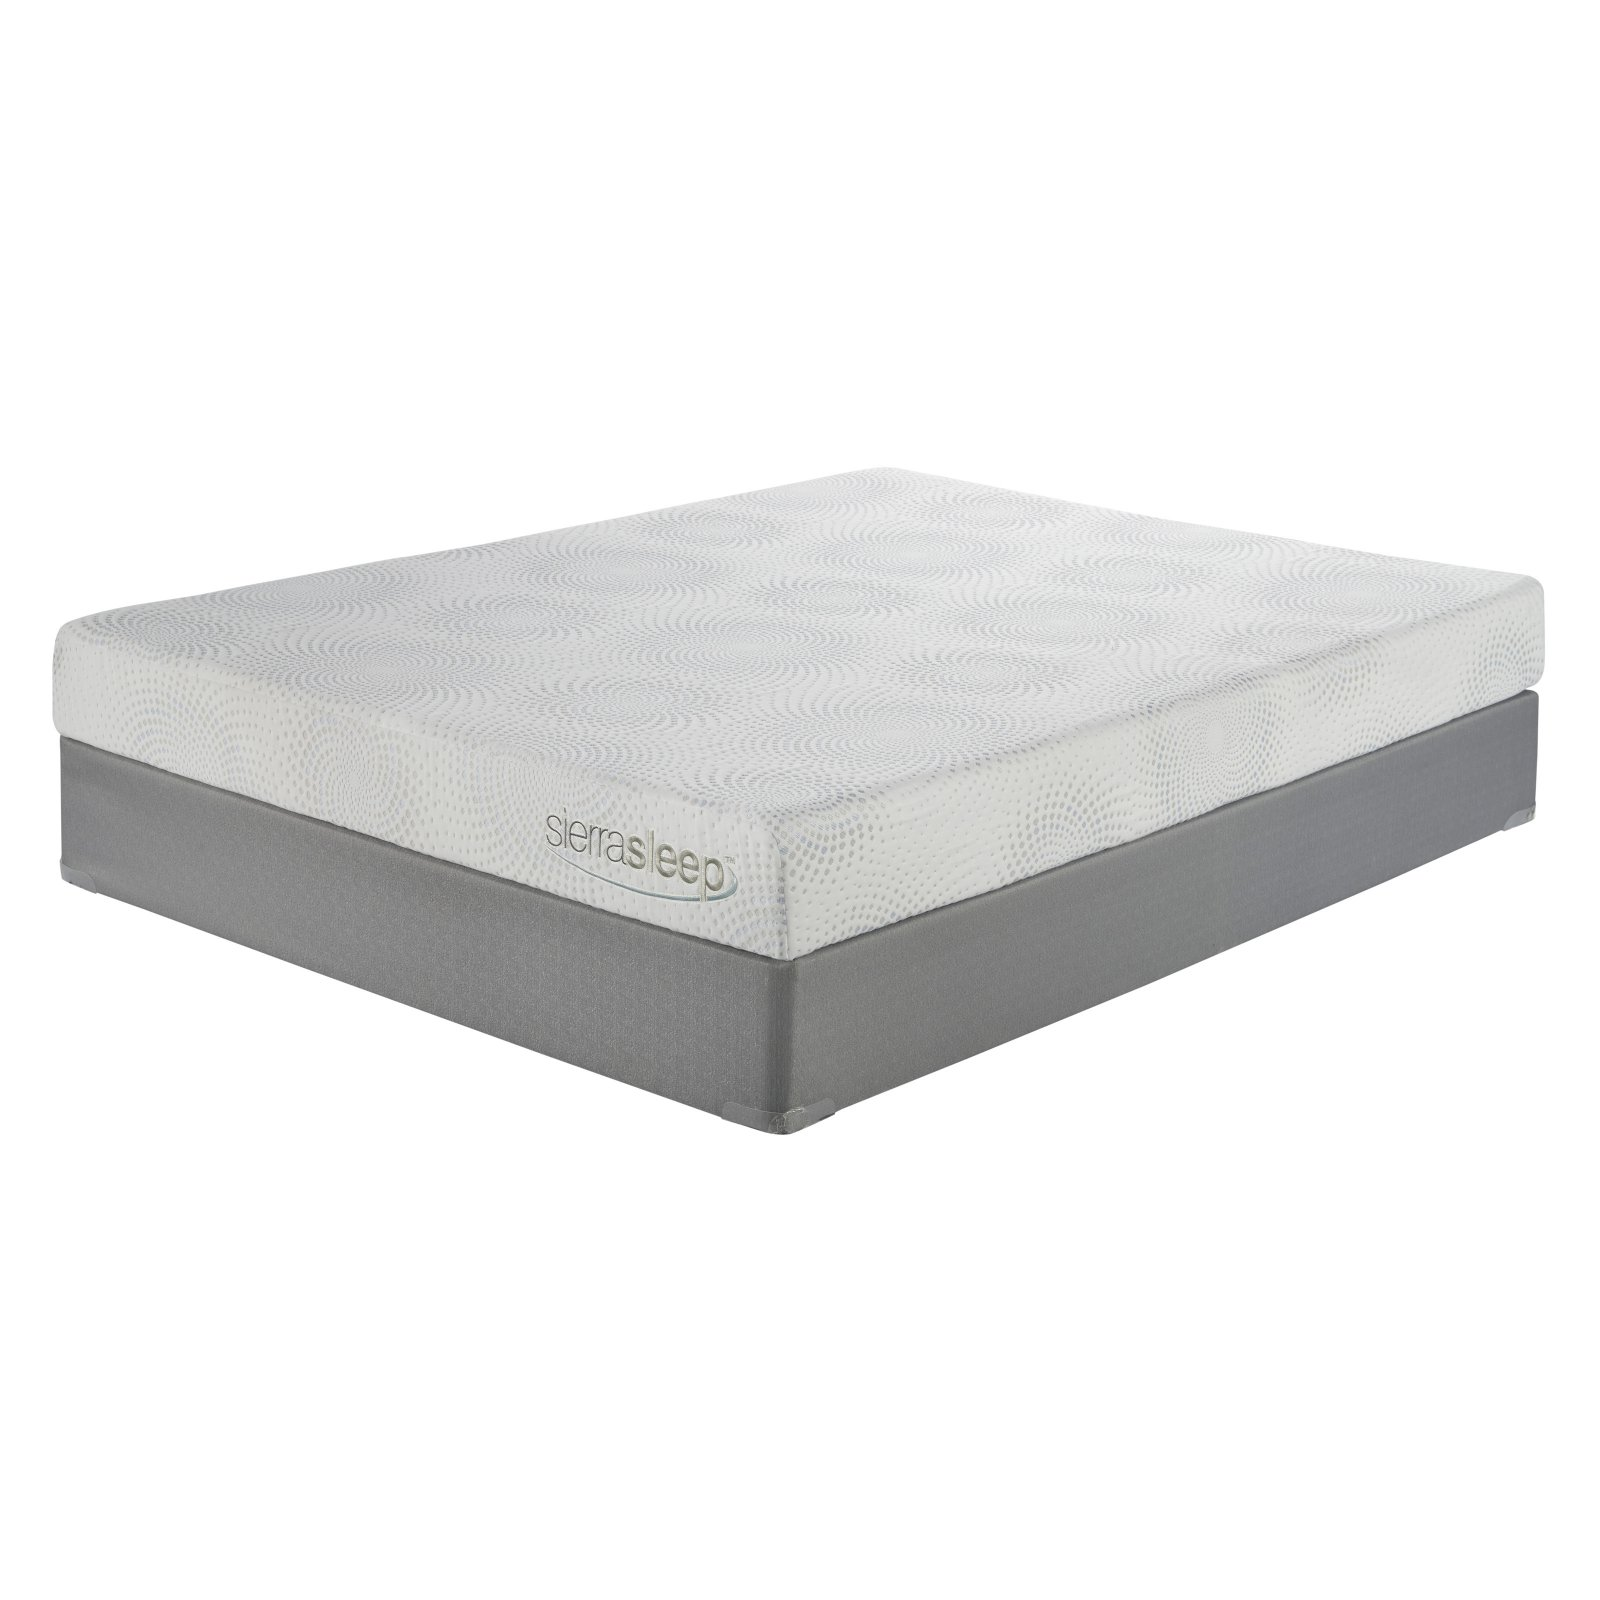 Sierra Sleep by Ashley 7 in. Gel Memory Foam Mattress